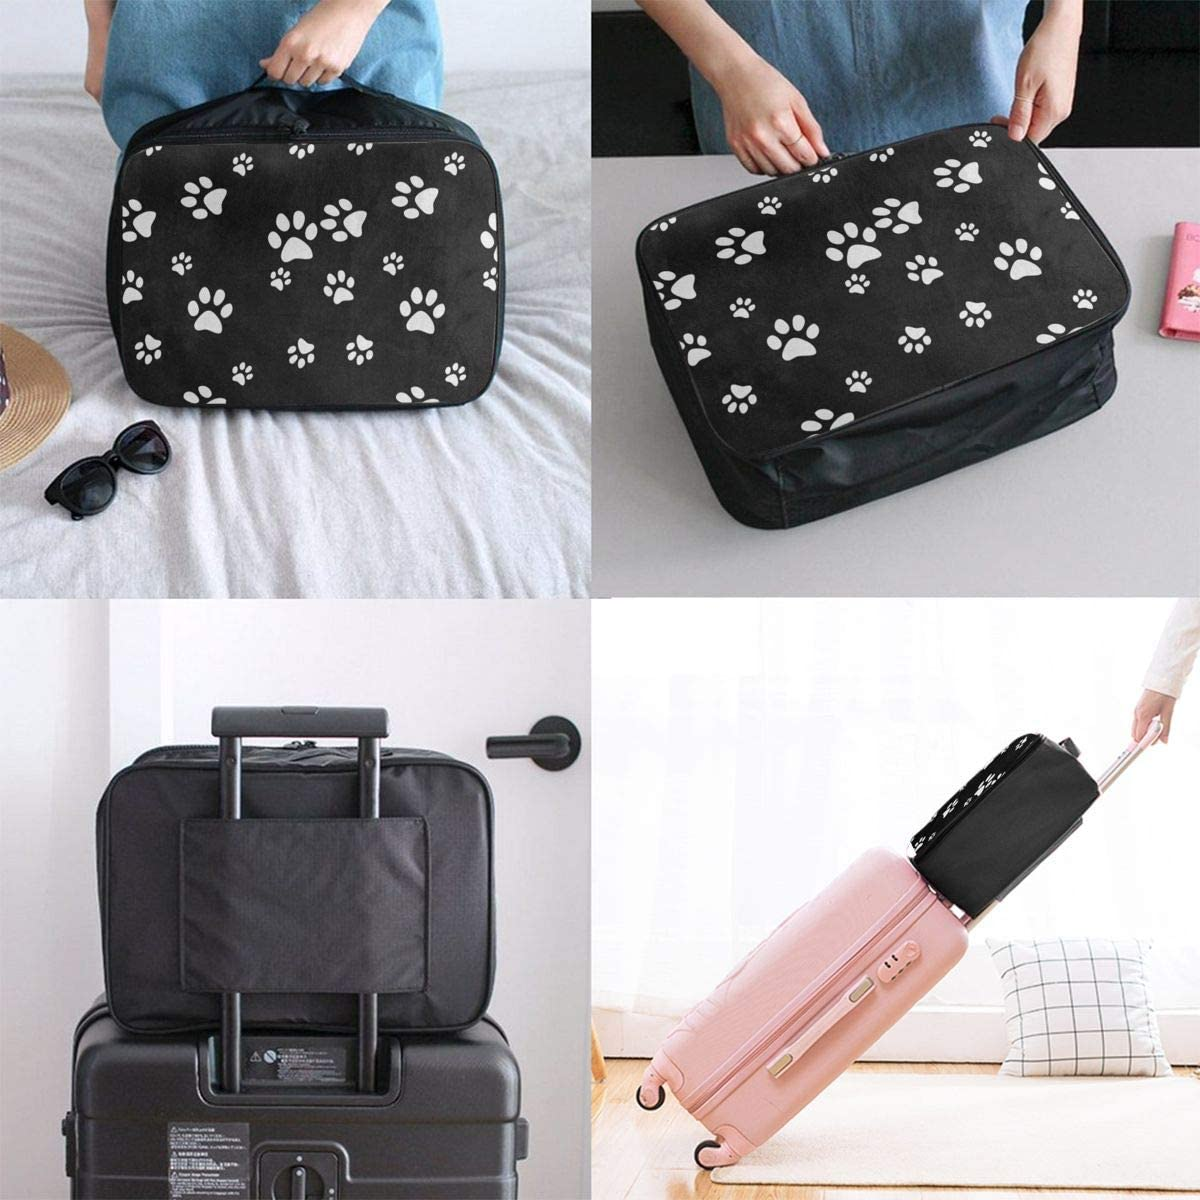 GymBag-06 ICOLOR Unisex Gym Bag Tote Bags Shoulder Bag Beach Bag with Zipper for Women Men Gym Picnic Travel Beach Shopping Work Daily Use